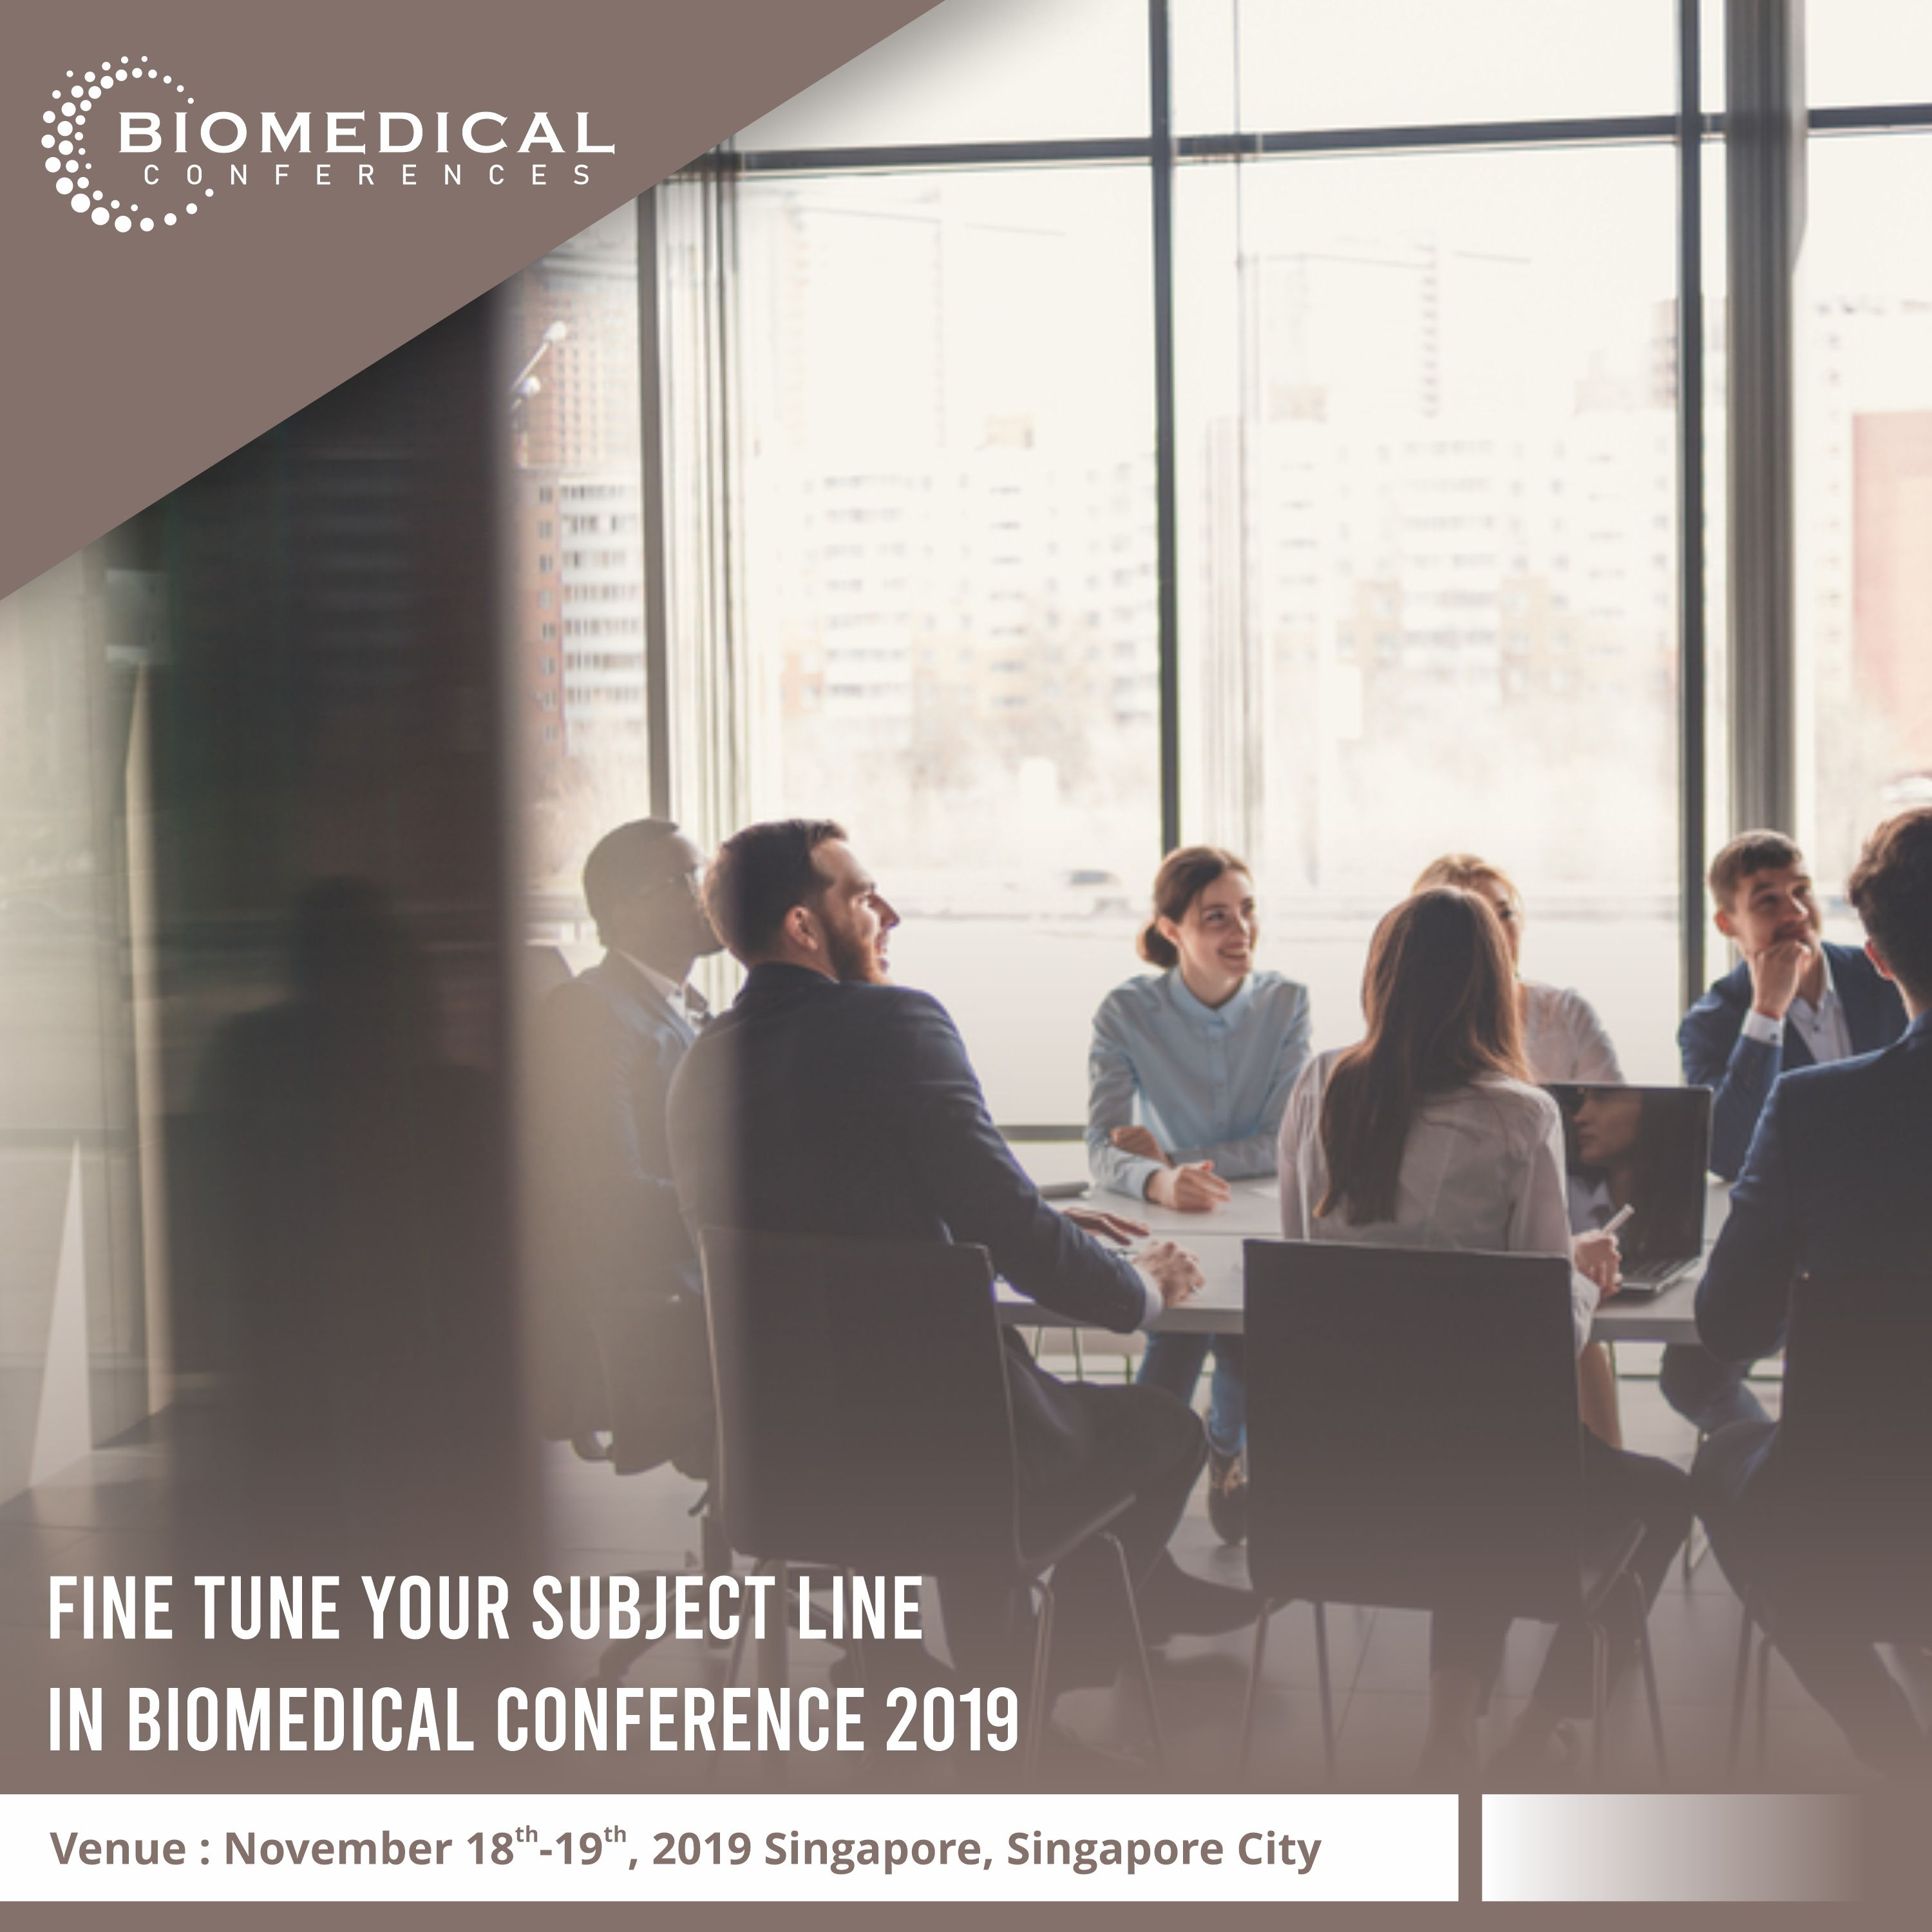 Biomedical Conferences provides a great platform by